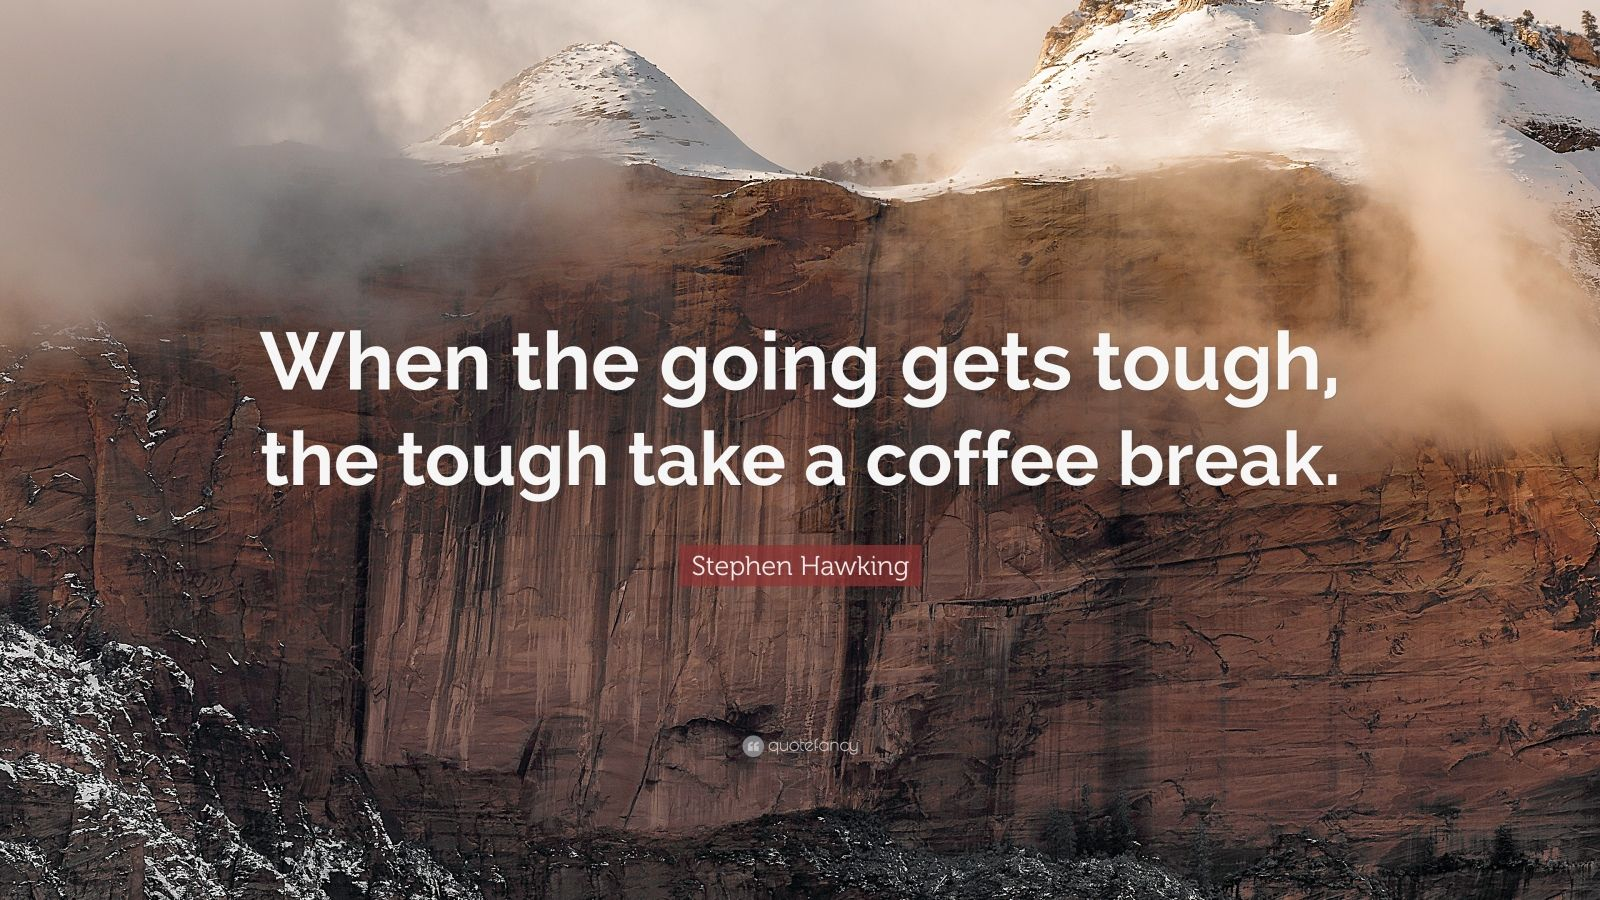 Douglas Adams Quotes Wallpaper Stephen Hawking Quote When The Going Gets Tough The